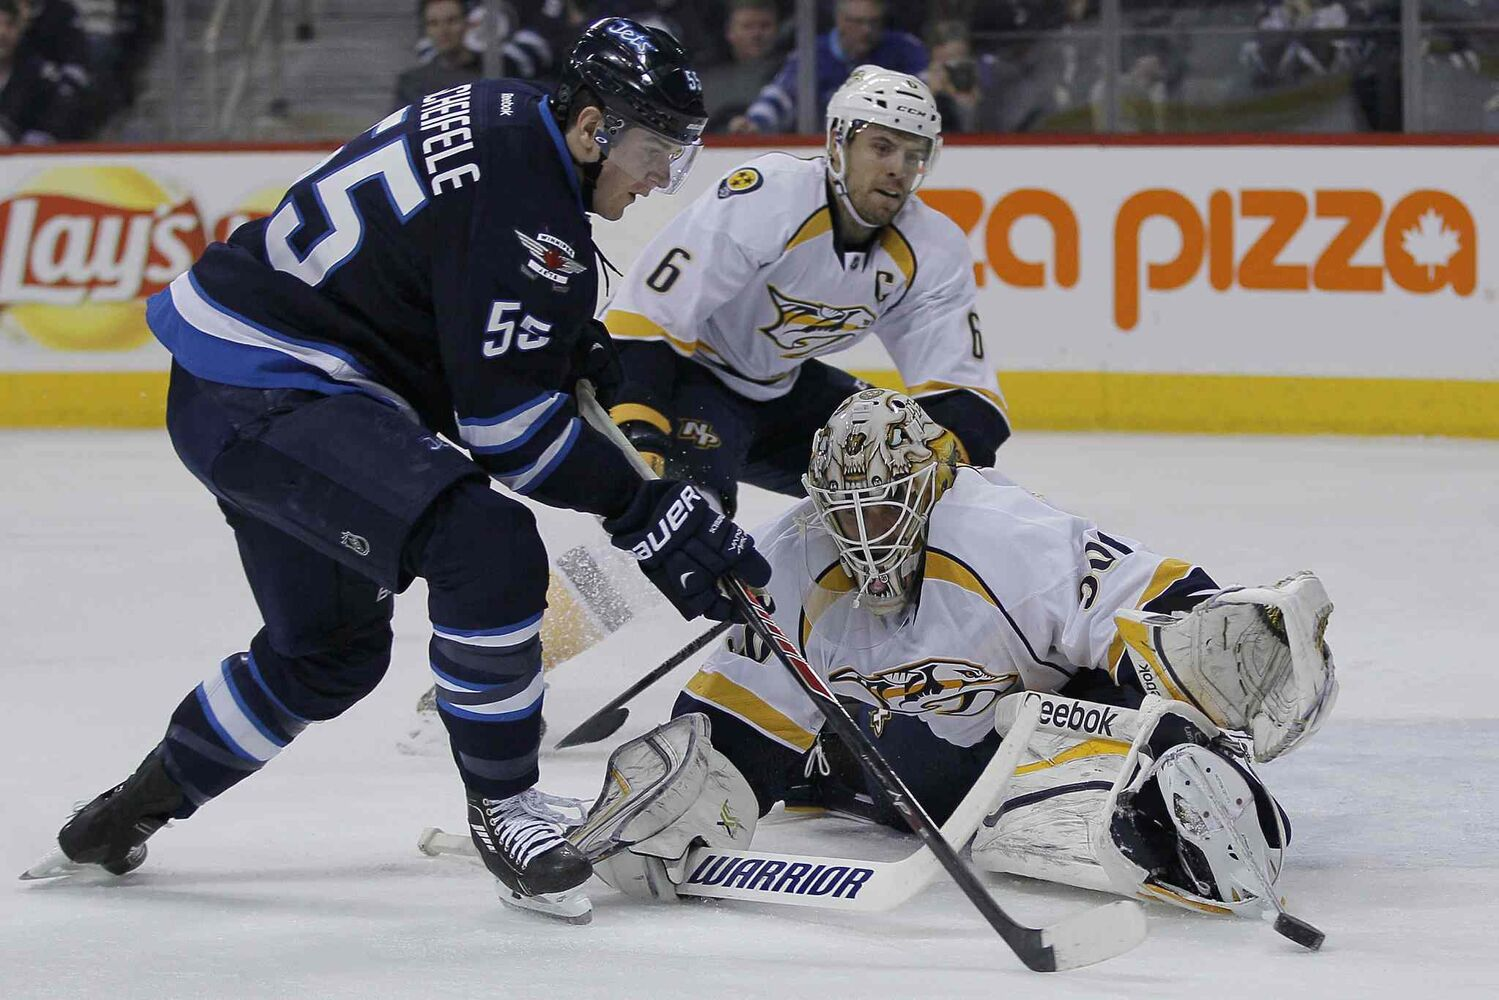 Winnipeg Jets' Mark Scheifele (55) gets around Nashville Predators' goaltender Carter Hutton (30) just before shooting the puck off of Shea Weber (6) for a second-period goal Tuesday.